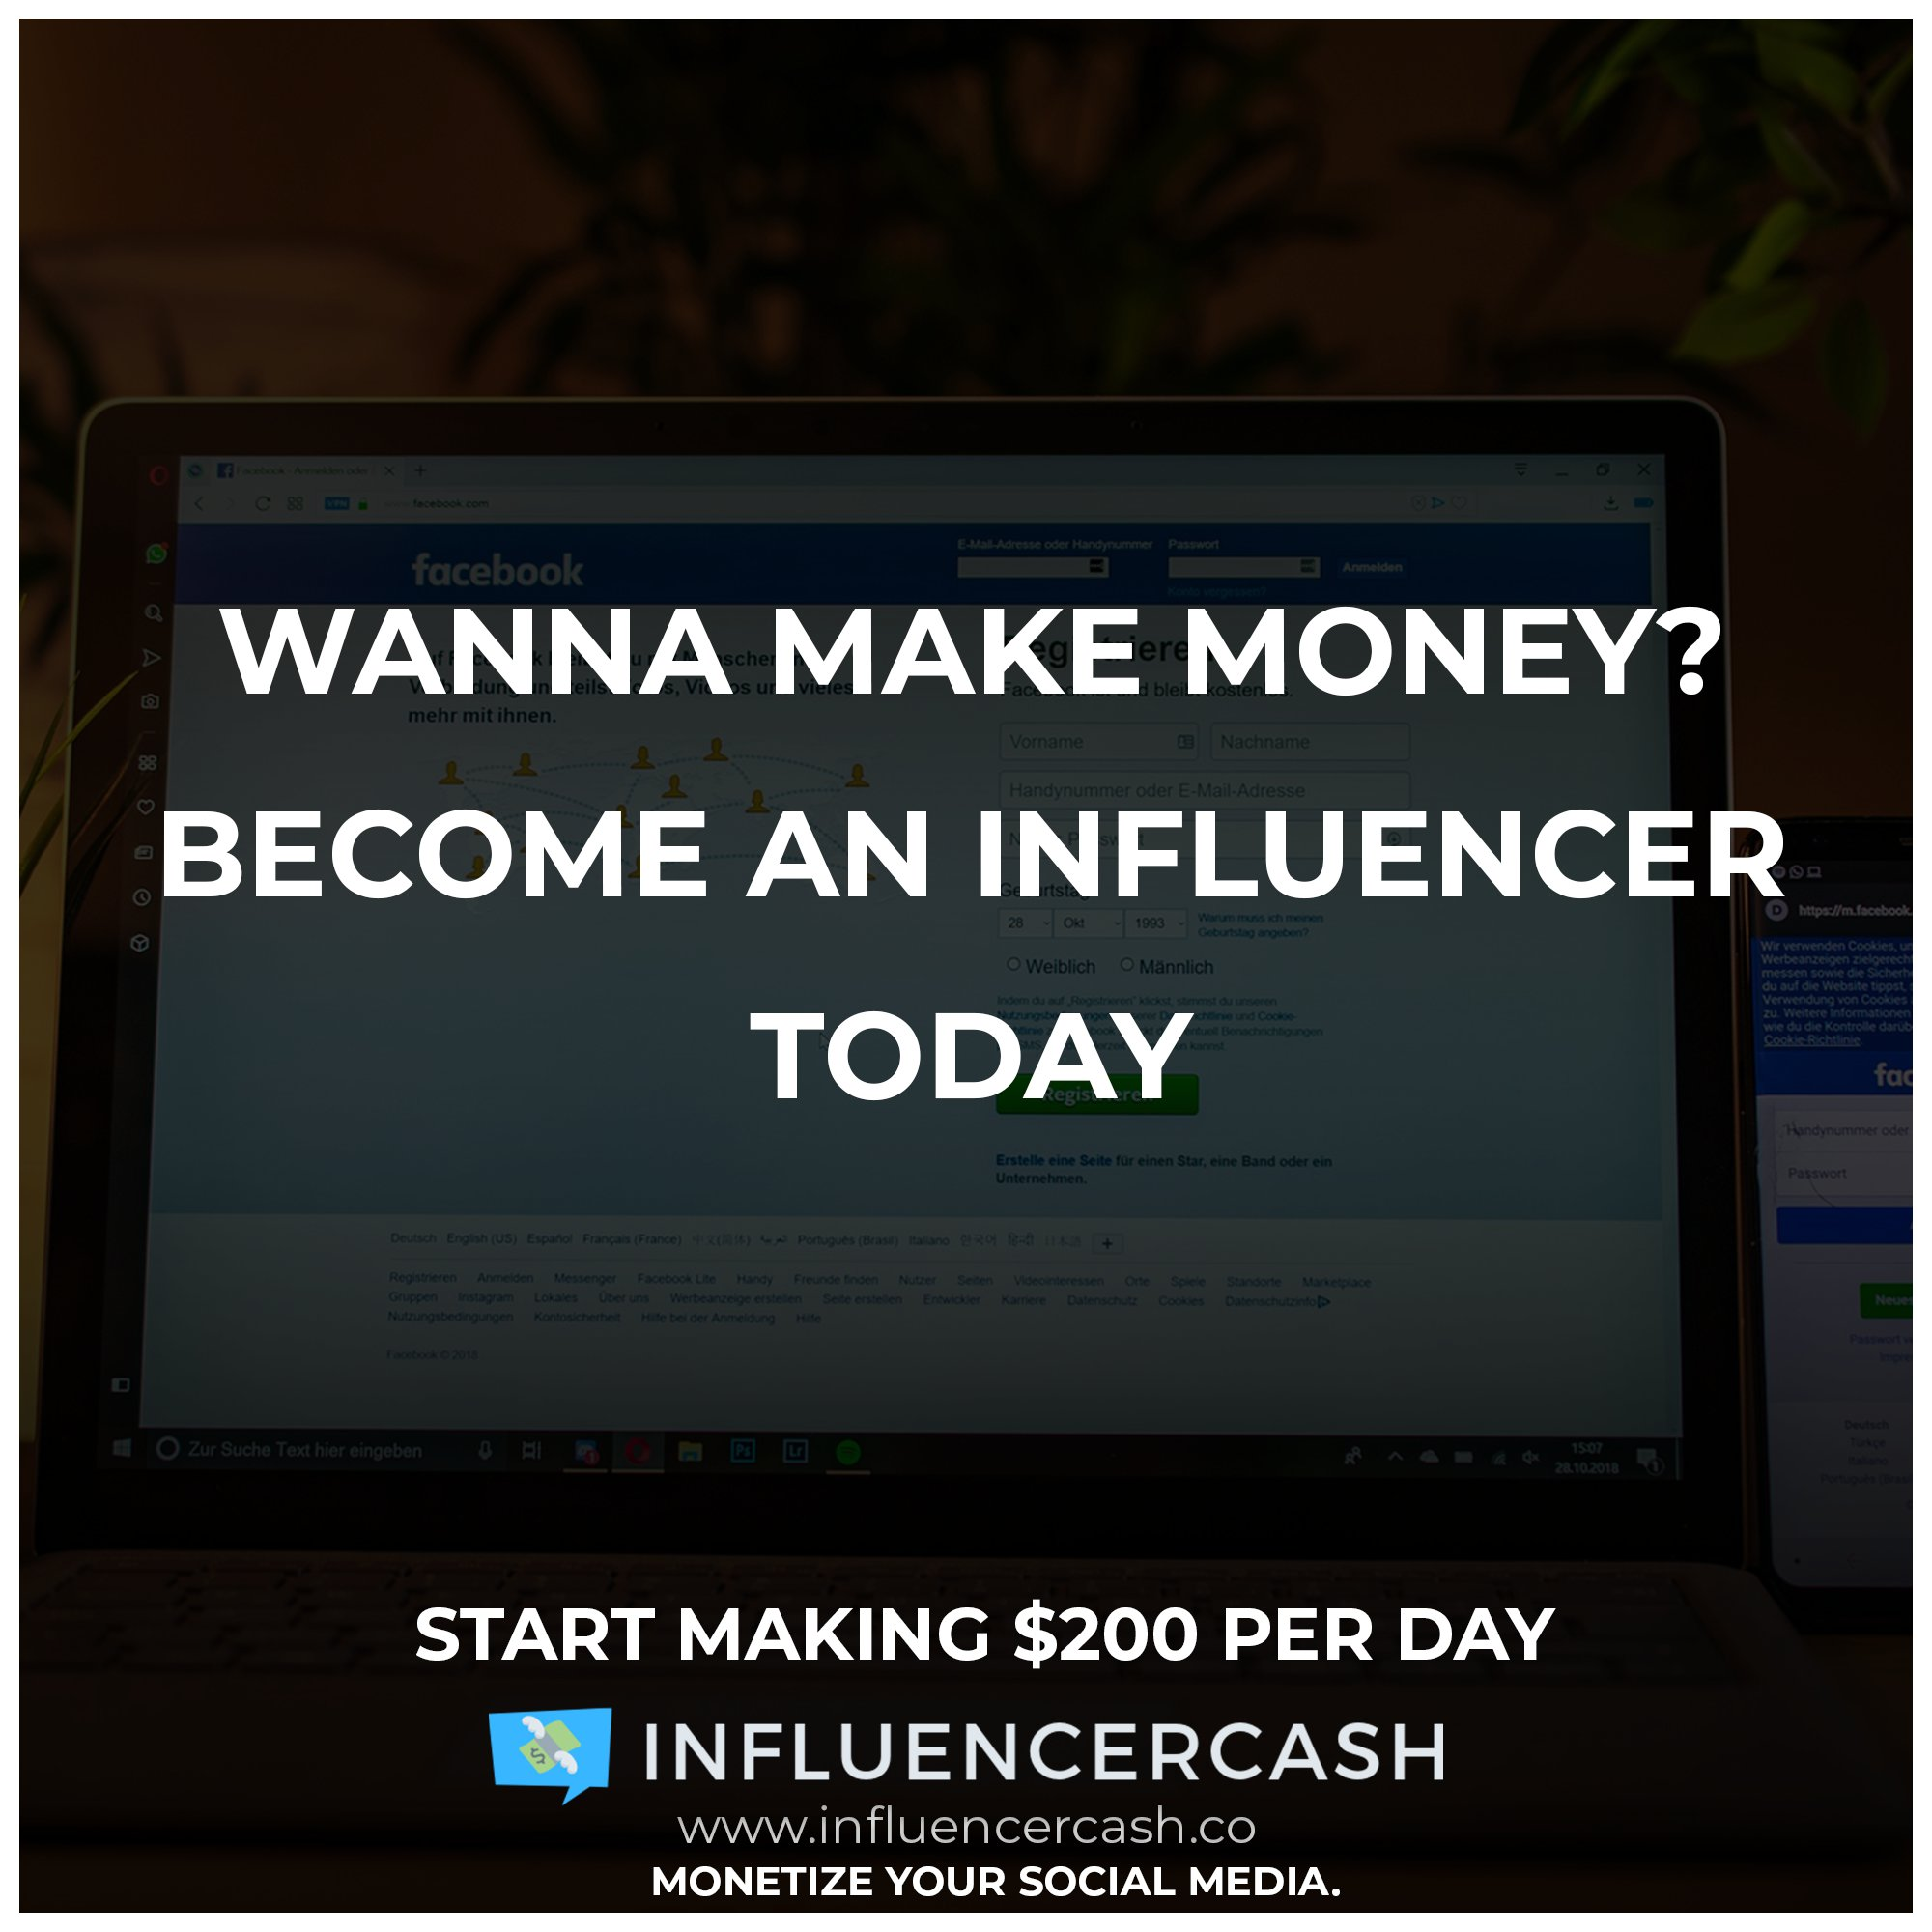 influencercash.co